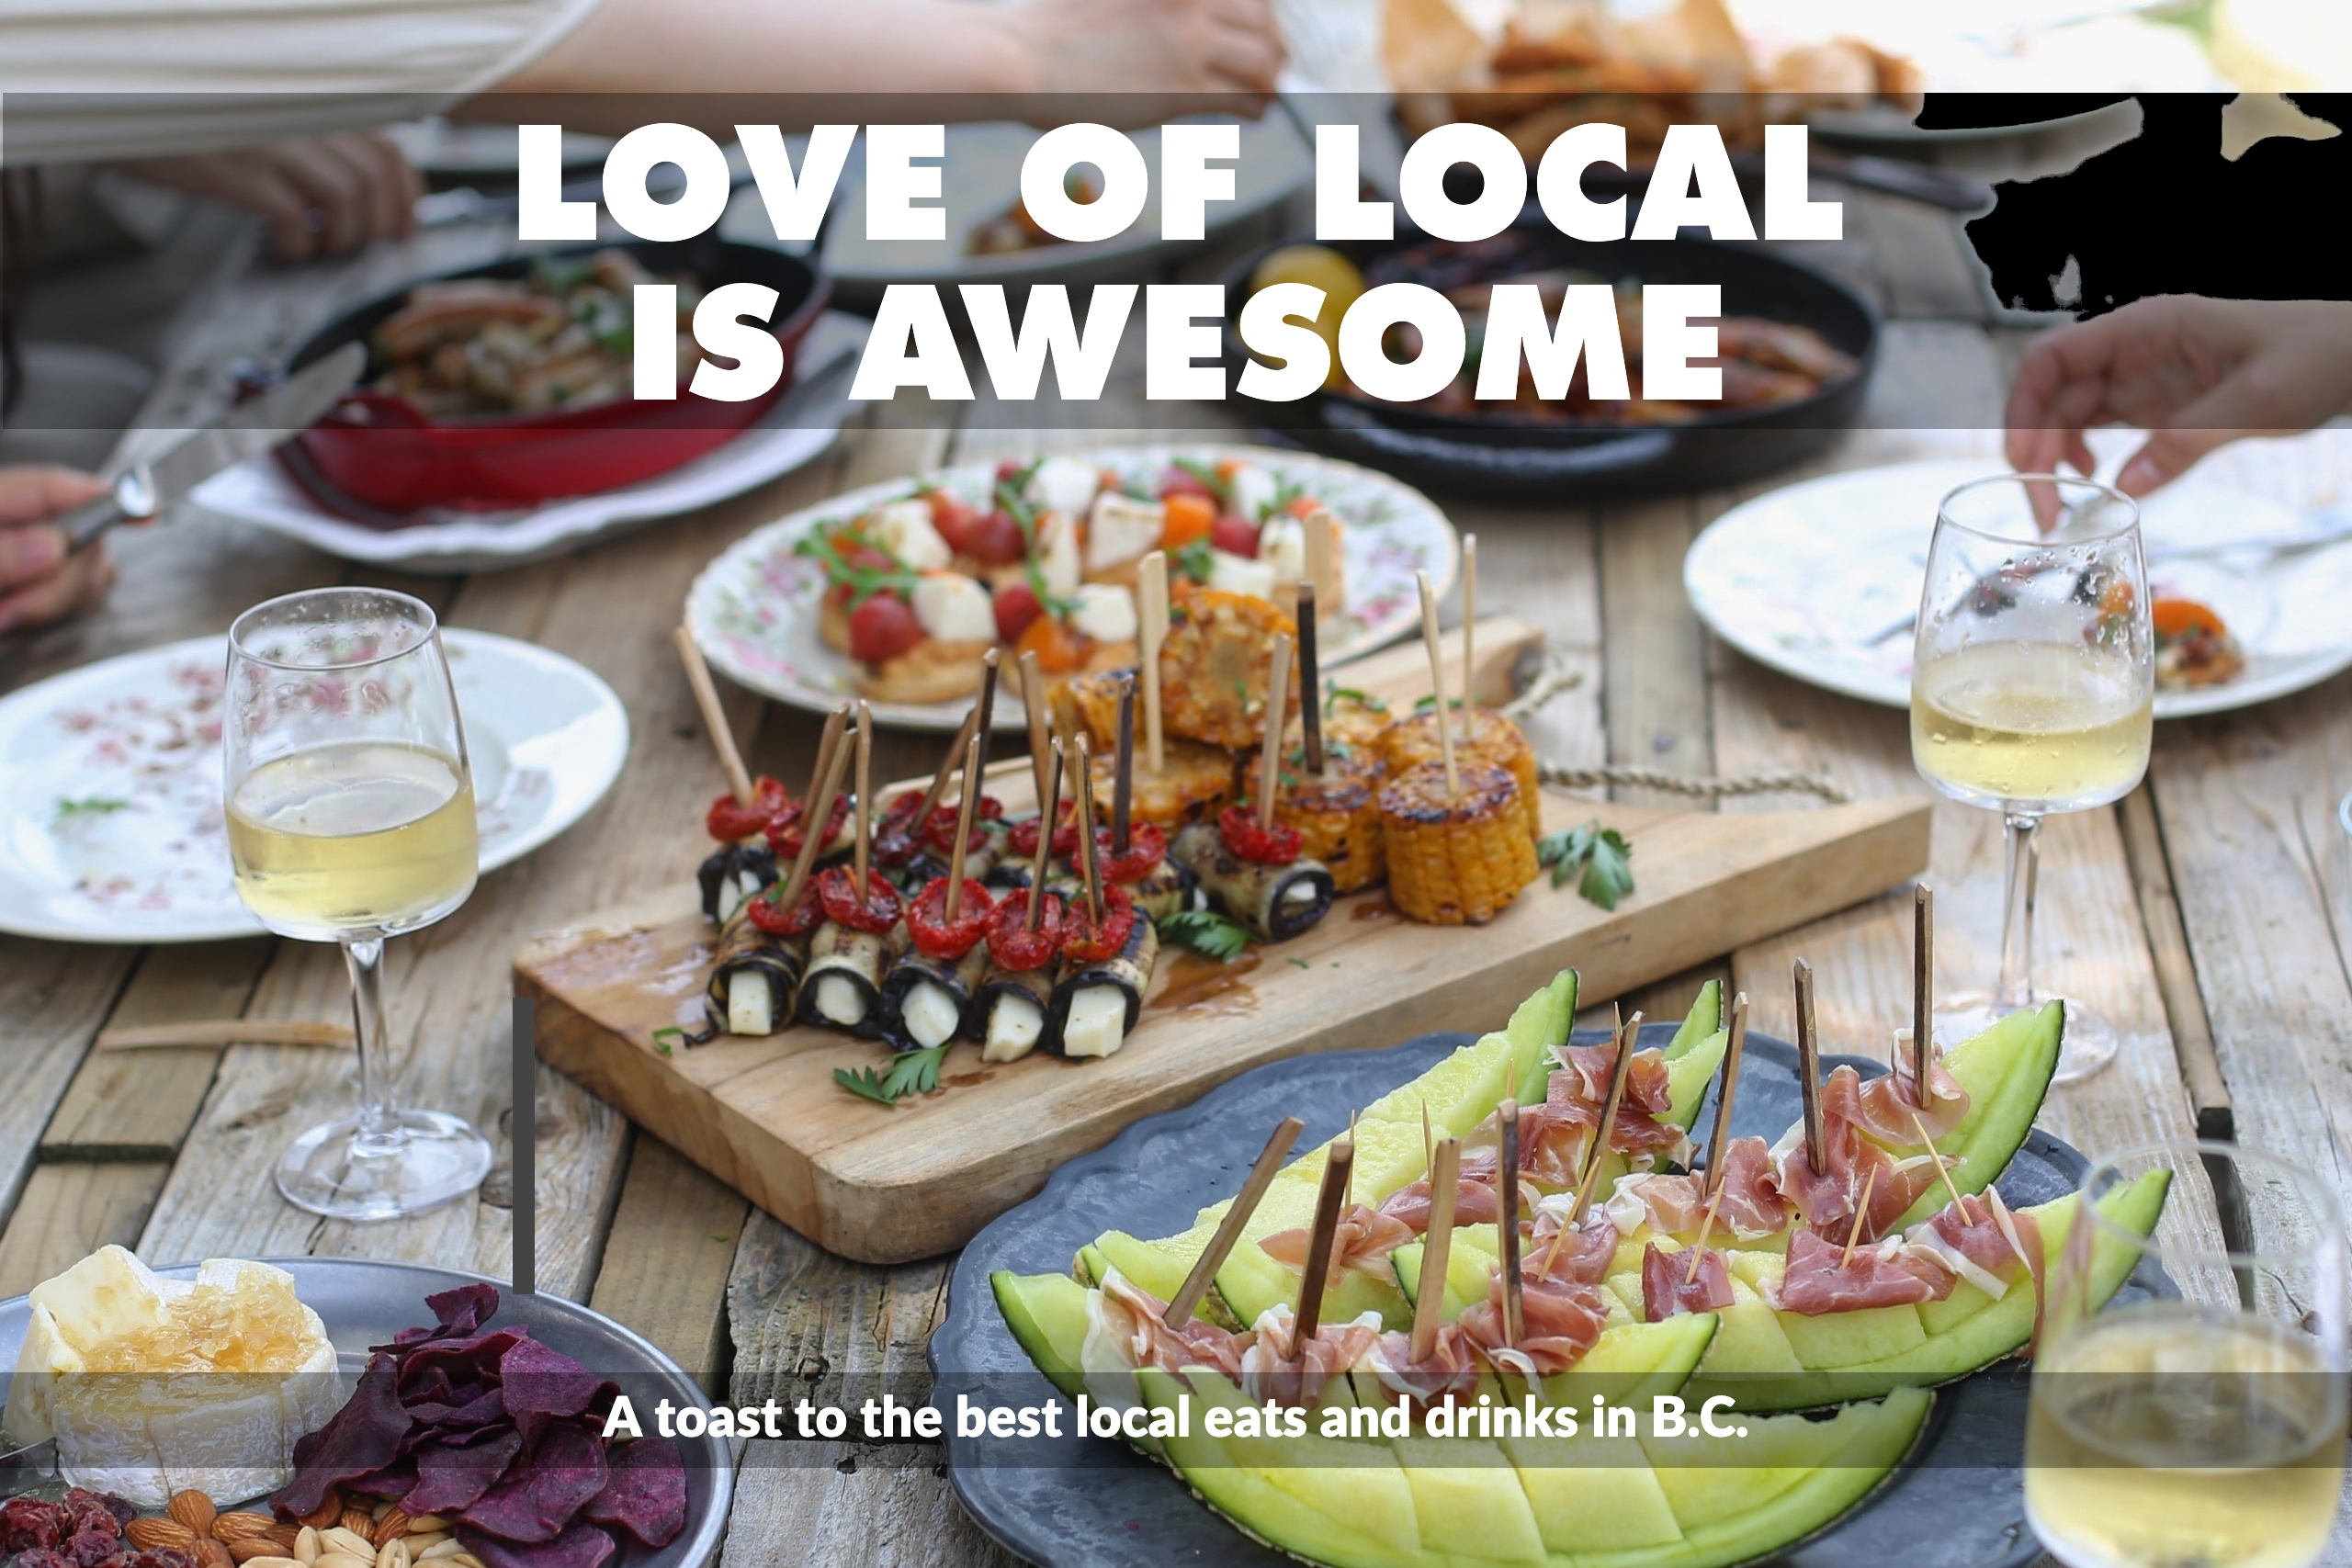 LOVE OF LOCAL IS AWESOME